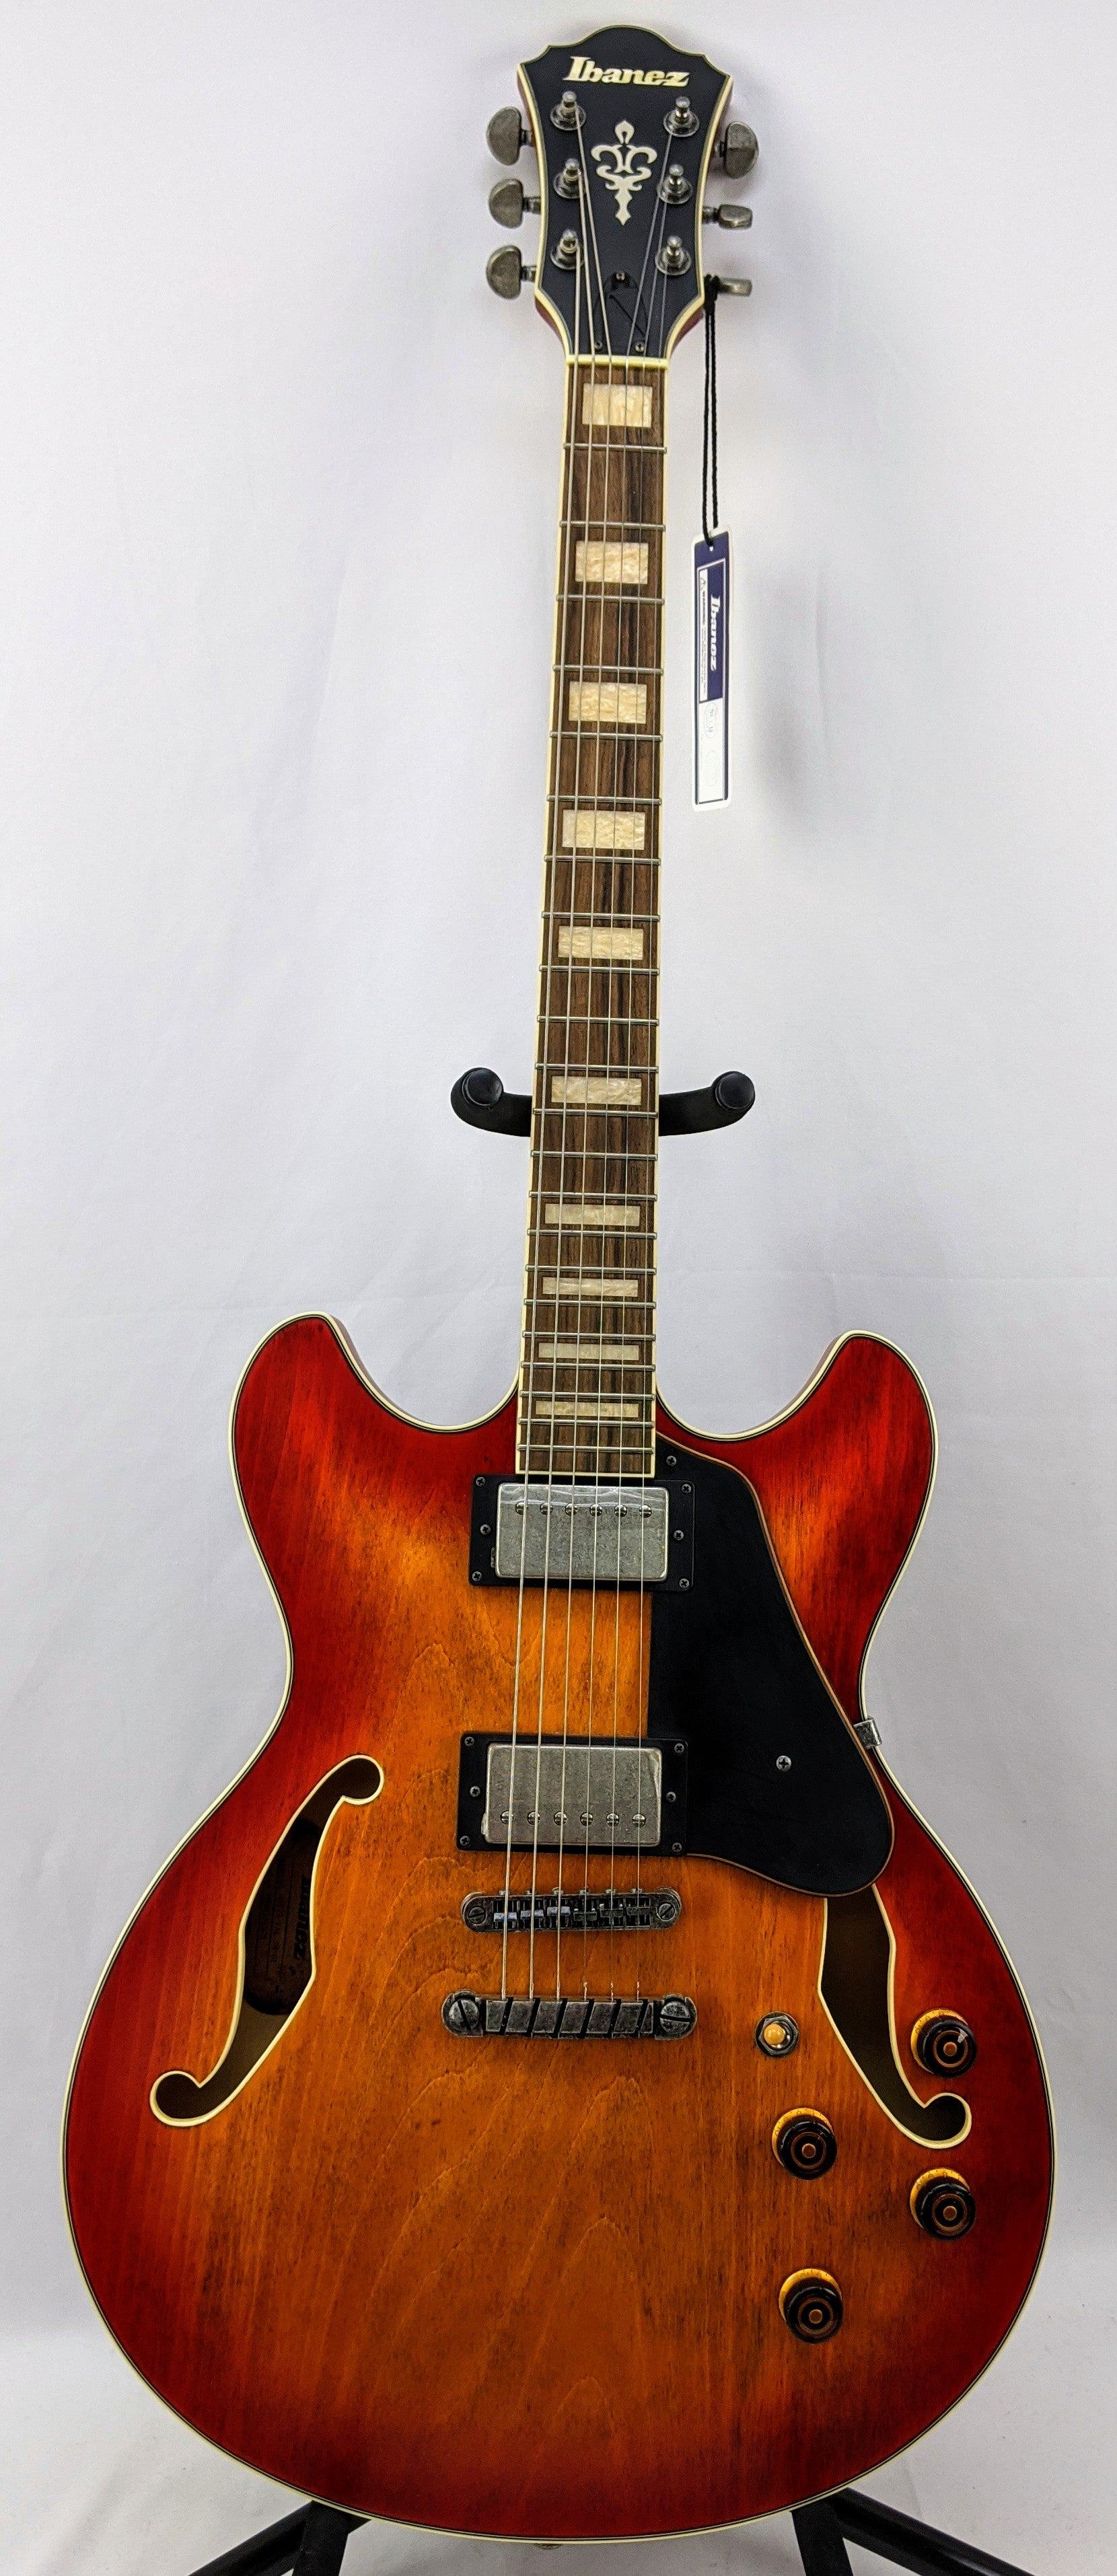 Ibanez ASV73VAL Right-Handed Semi-Hollow Body Electric Guitar